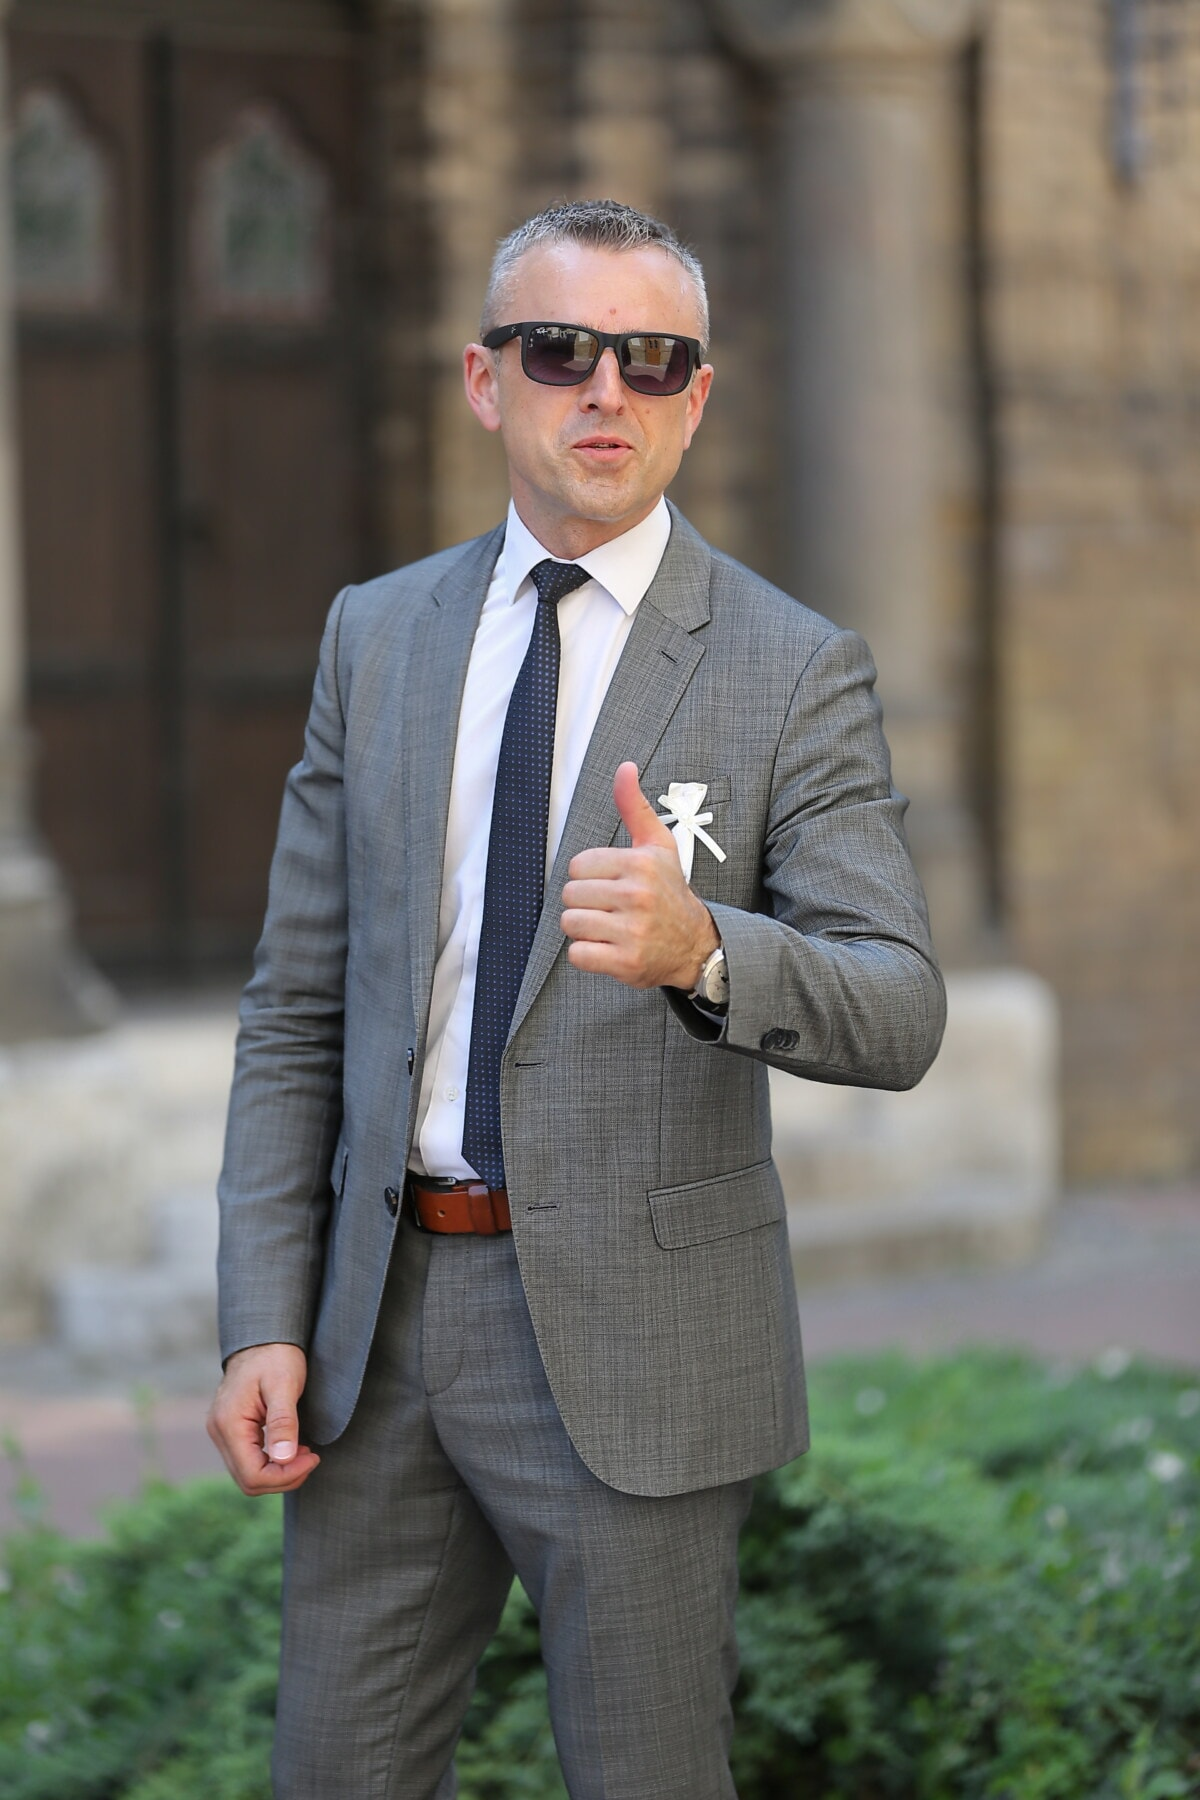 businessperson, businessman, sunglasses, tuxedo suit, successful, success, garment, suit, handsome, man